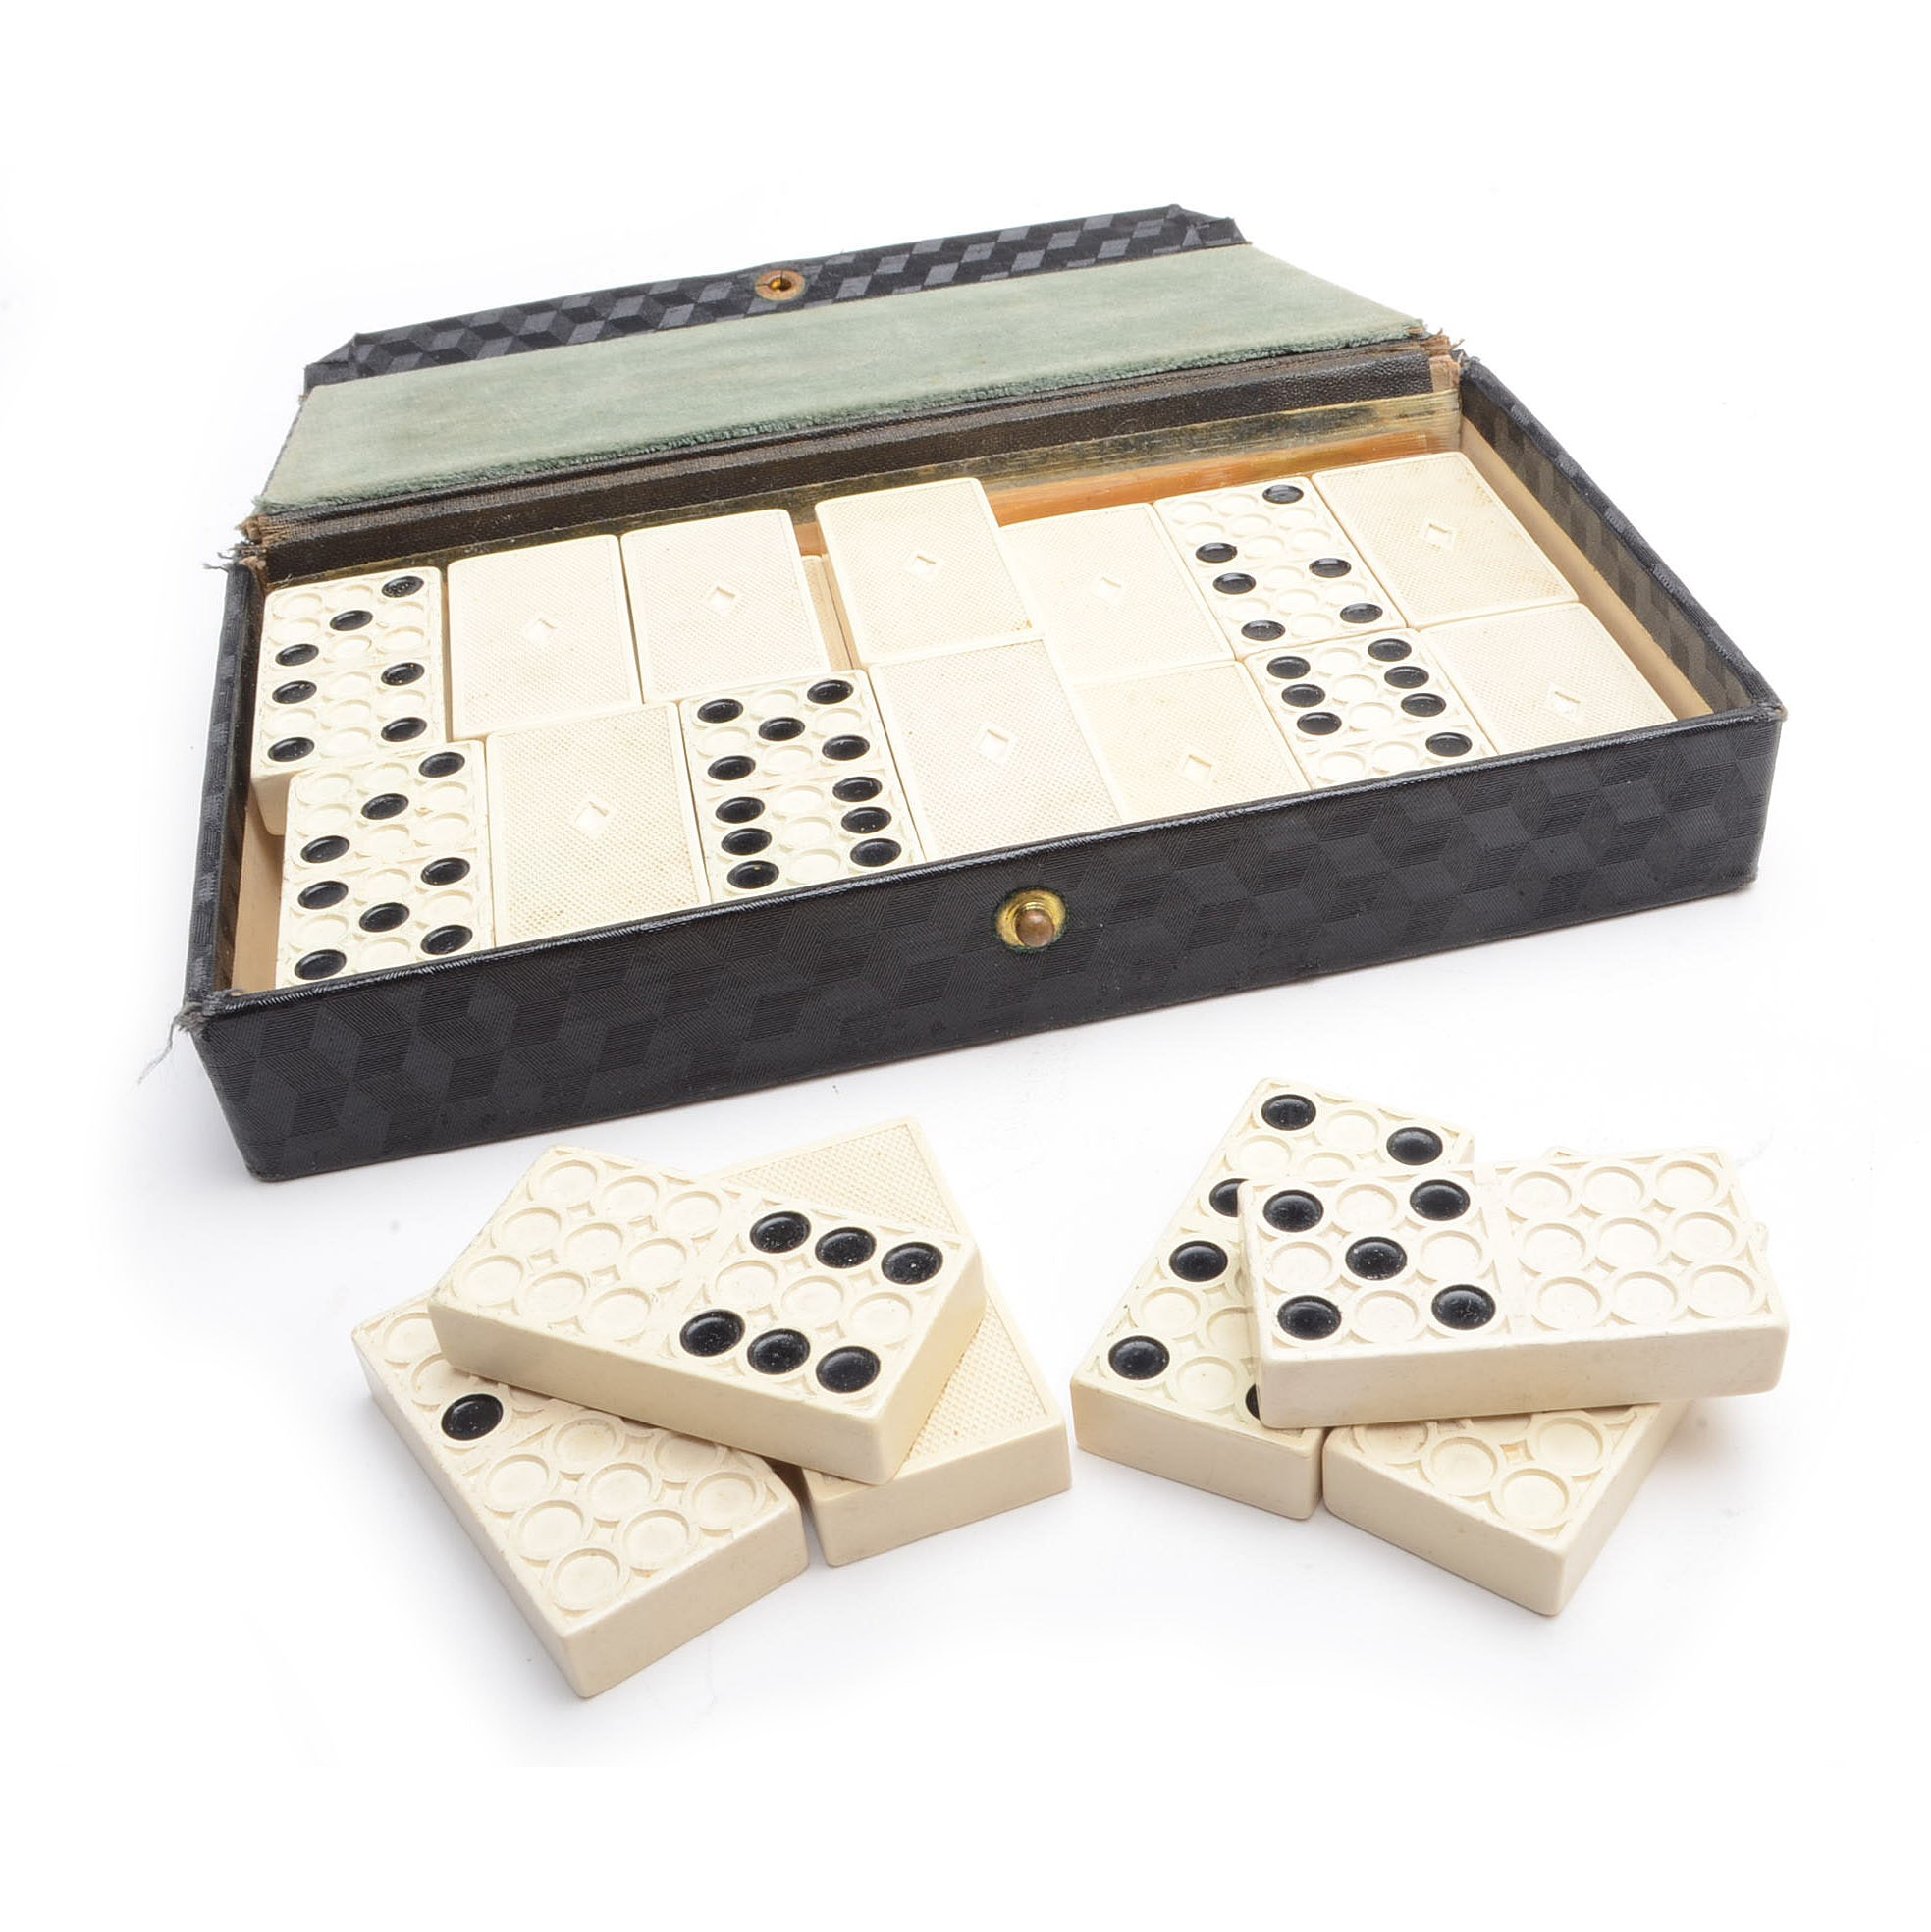 1930 Celluloid Domino Set